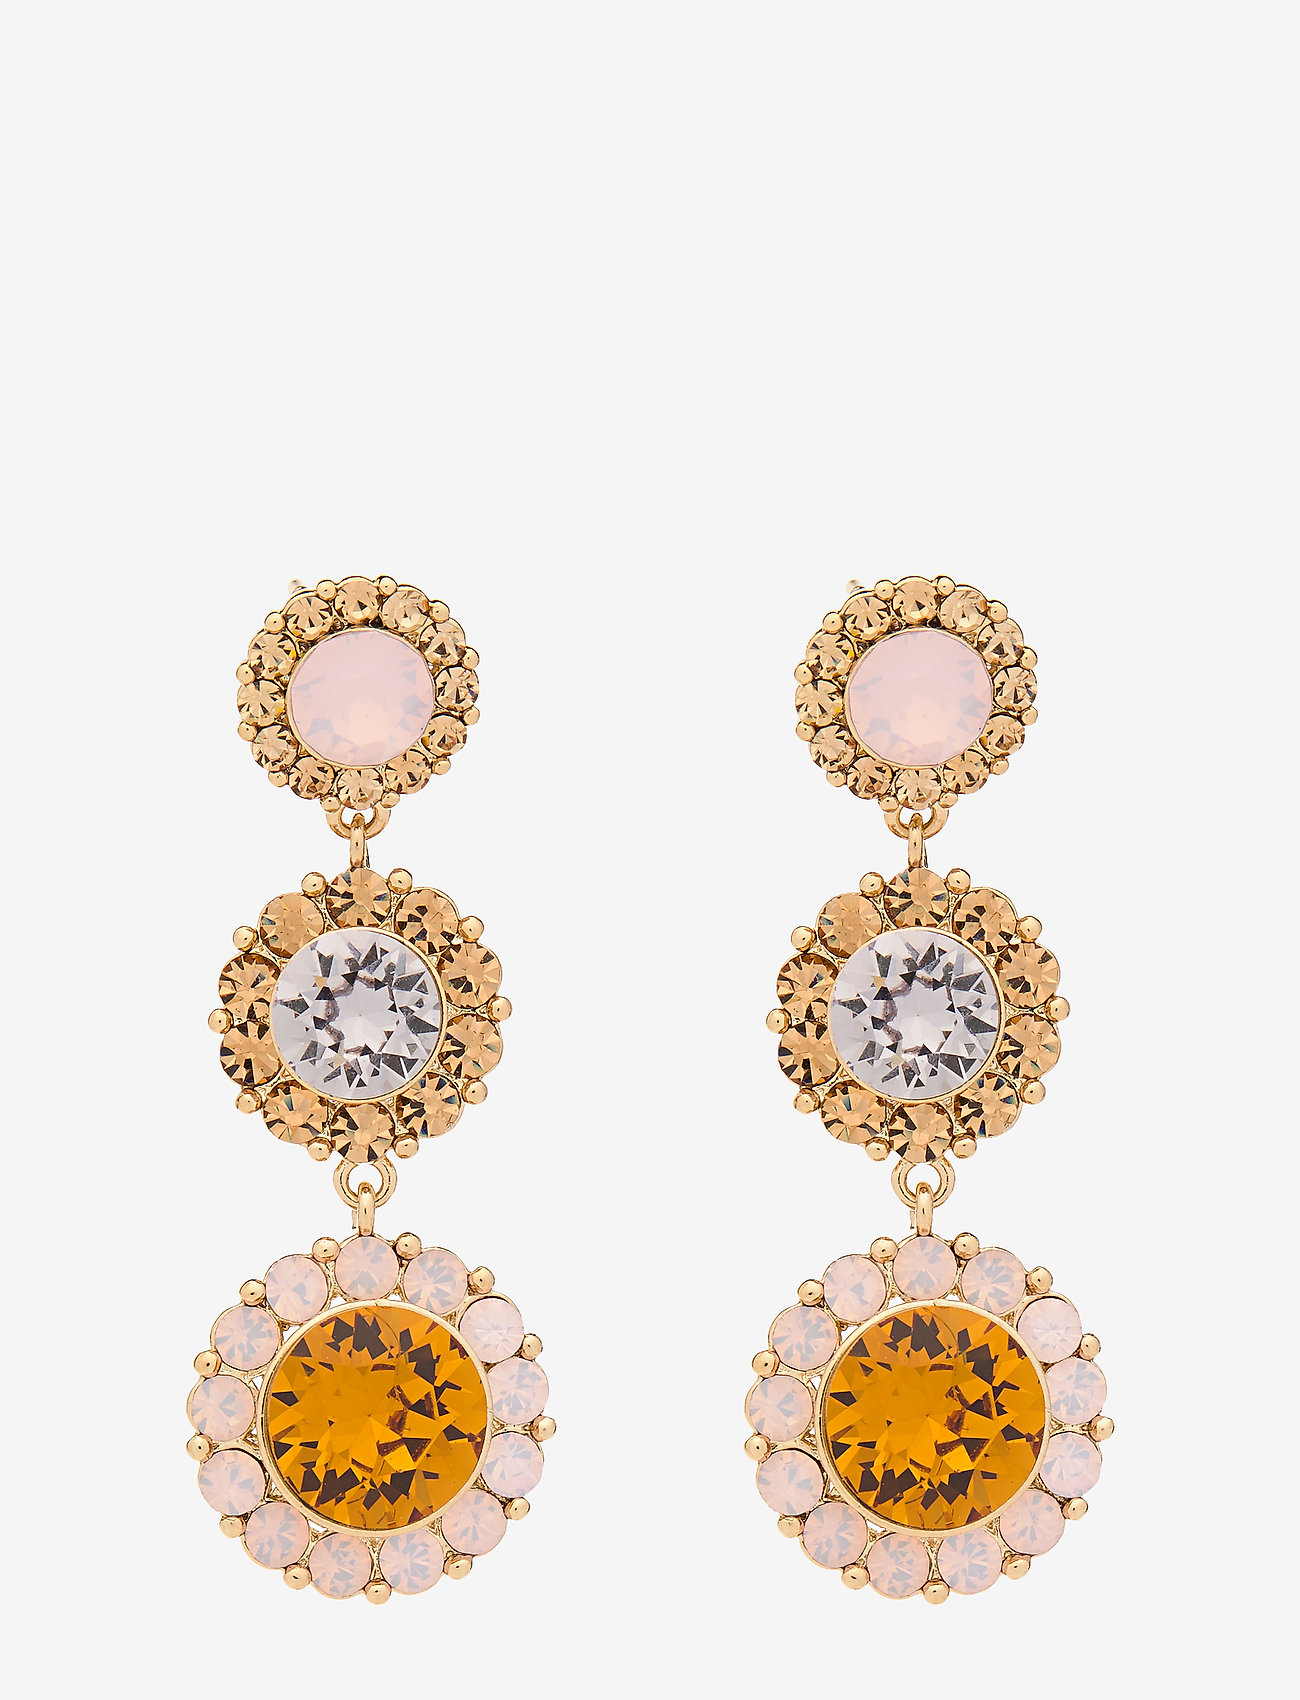 LILY AND ROSE - Sienna earrings - Topaz - statement - topaz